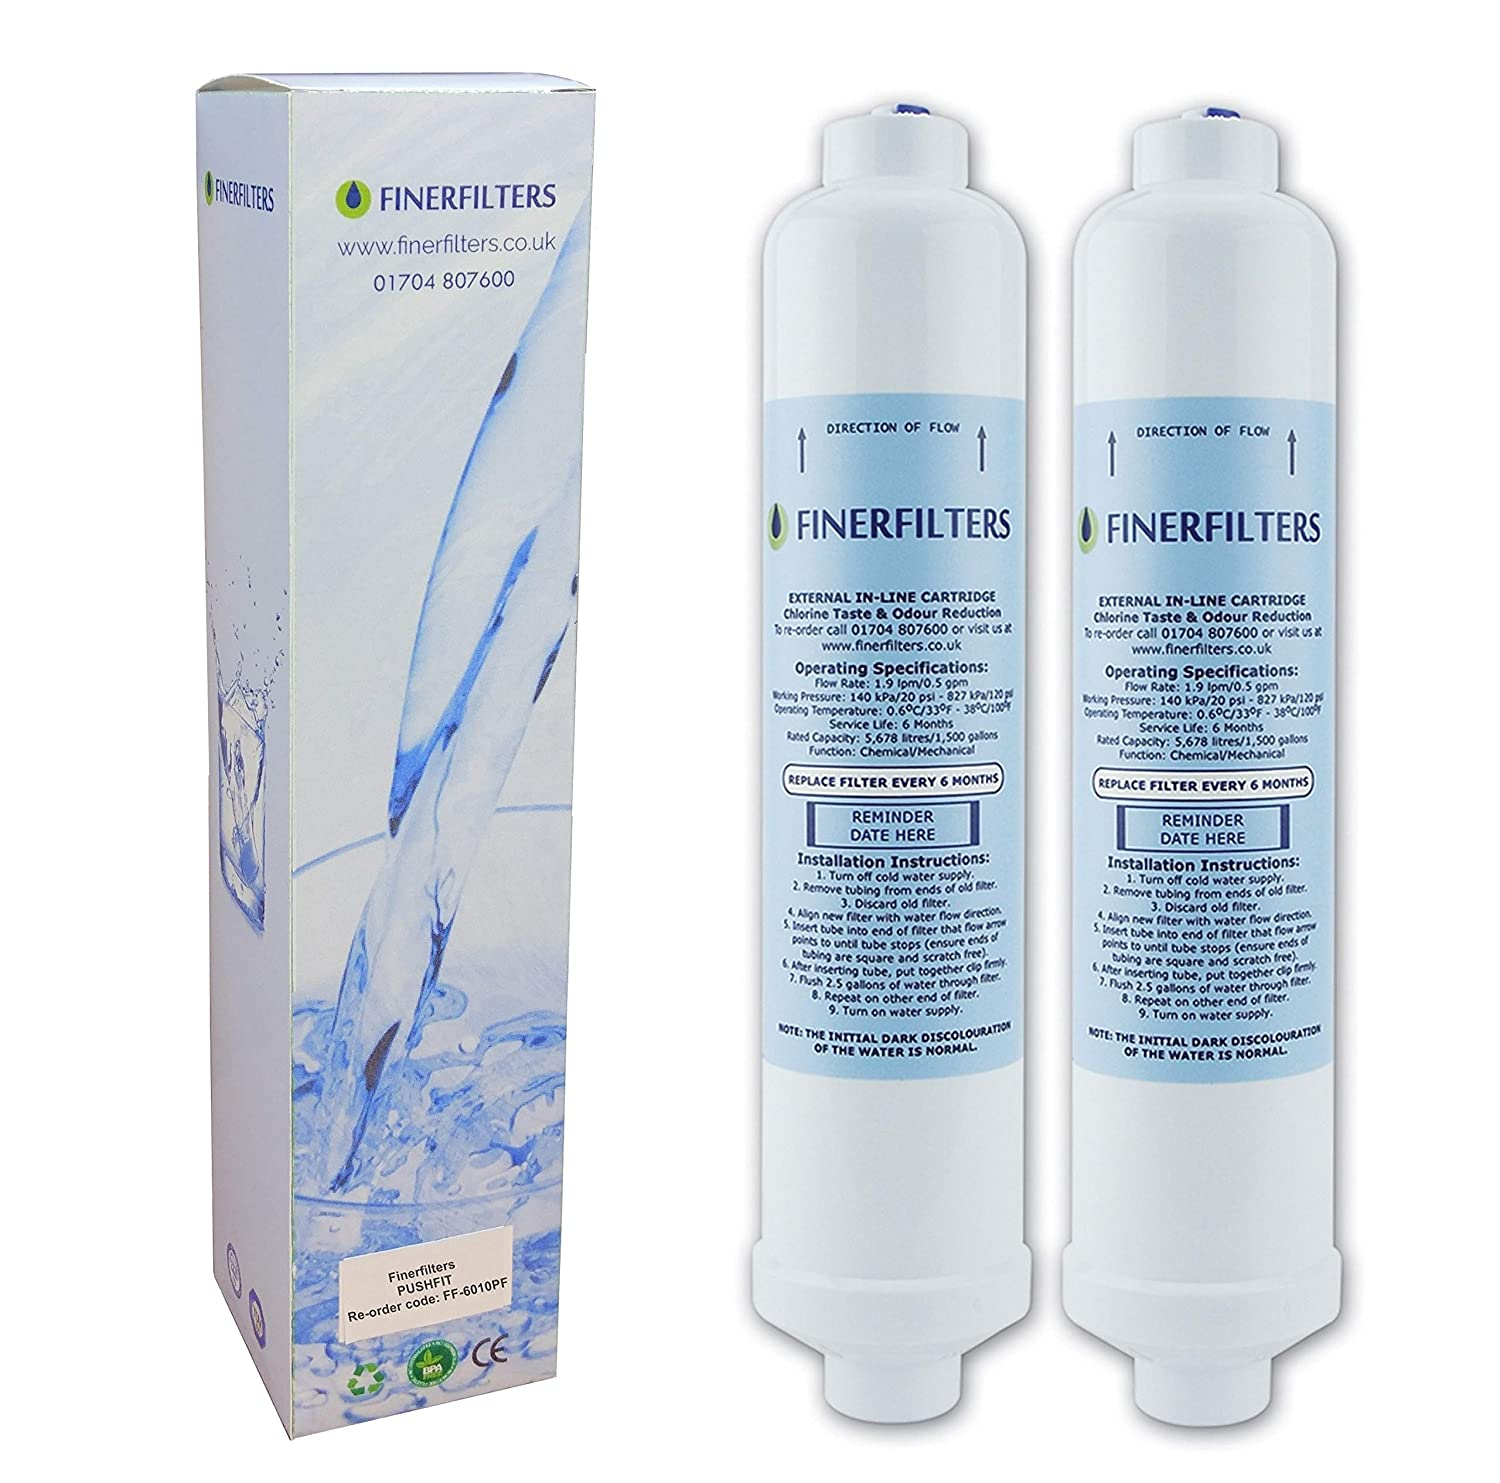 2 x Finerfilters Replacement Daewoo DD7098 497818 Compatible Fridge Water Filter Cartridge